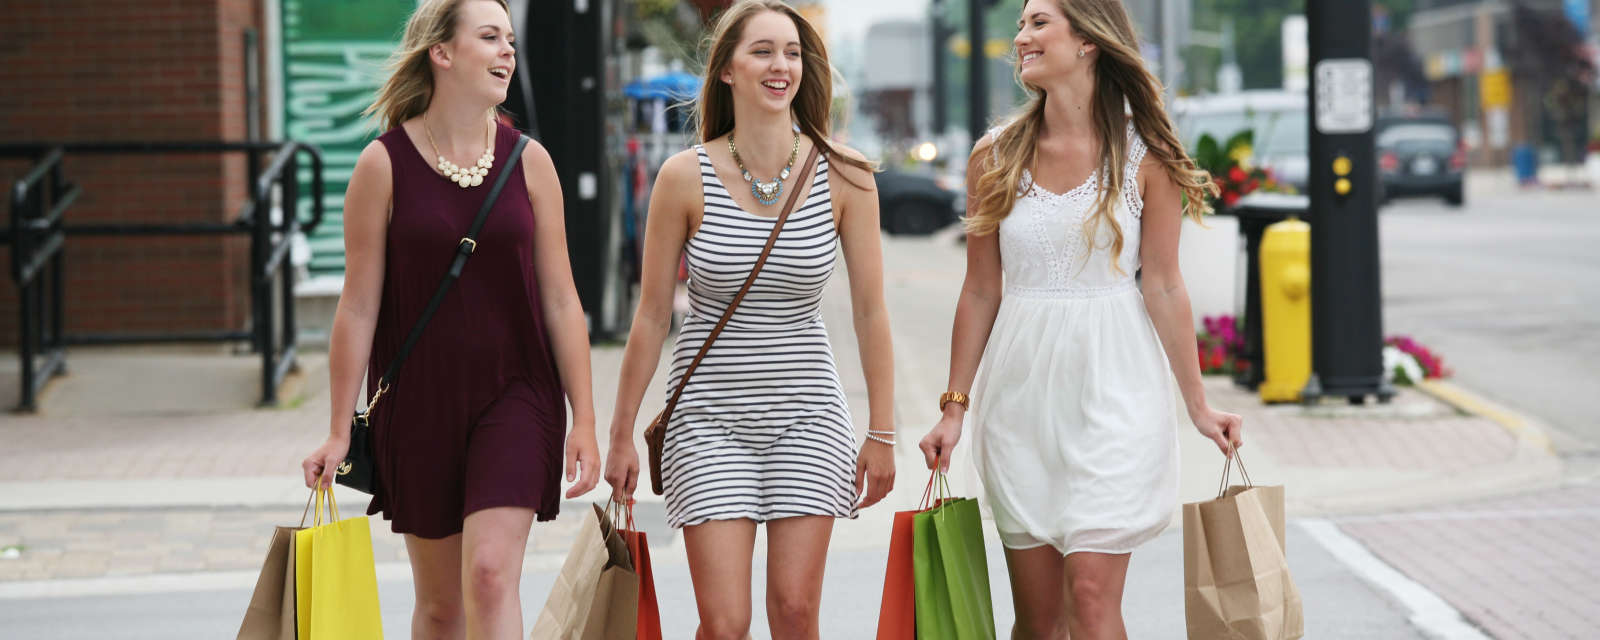 Clothing Shopping Port Elgin